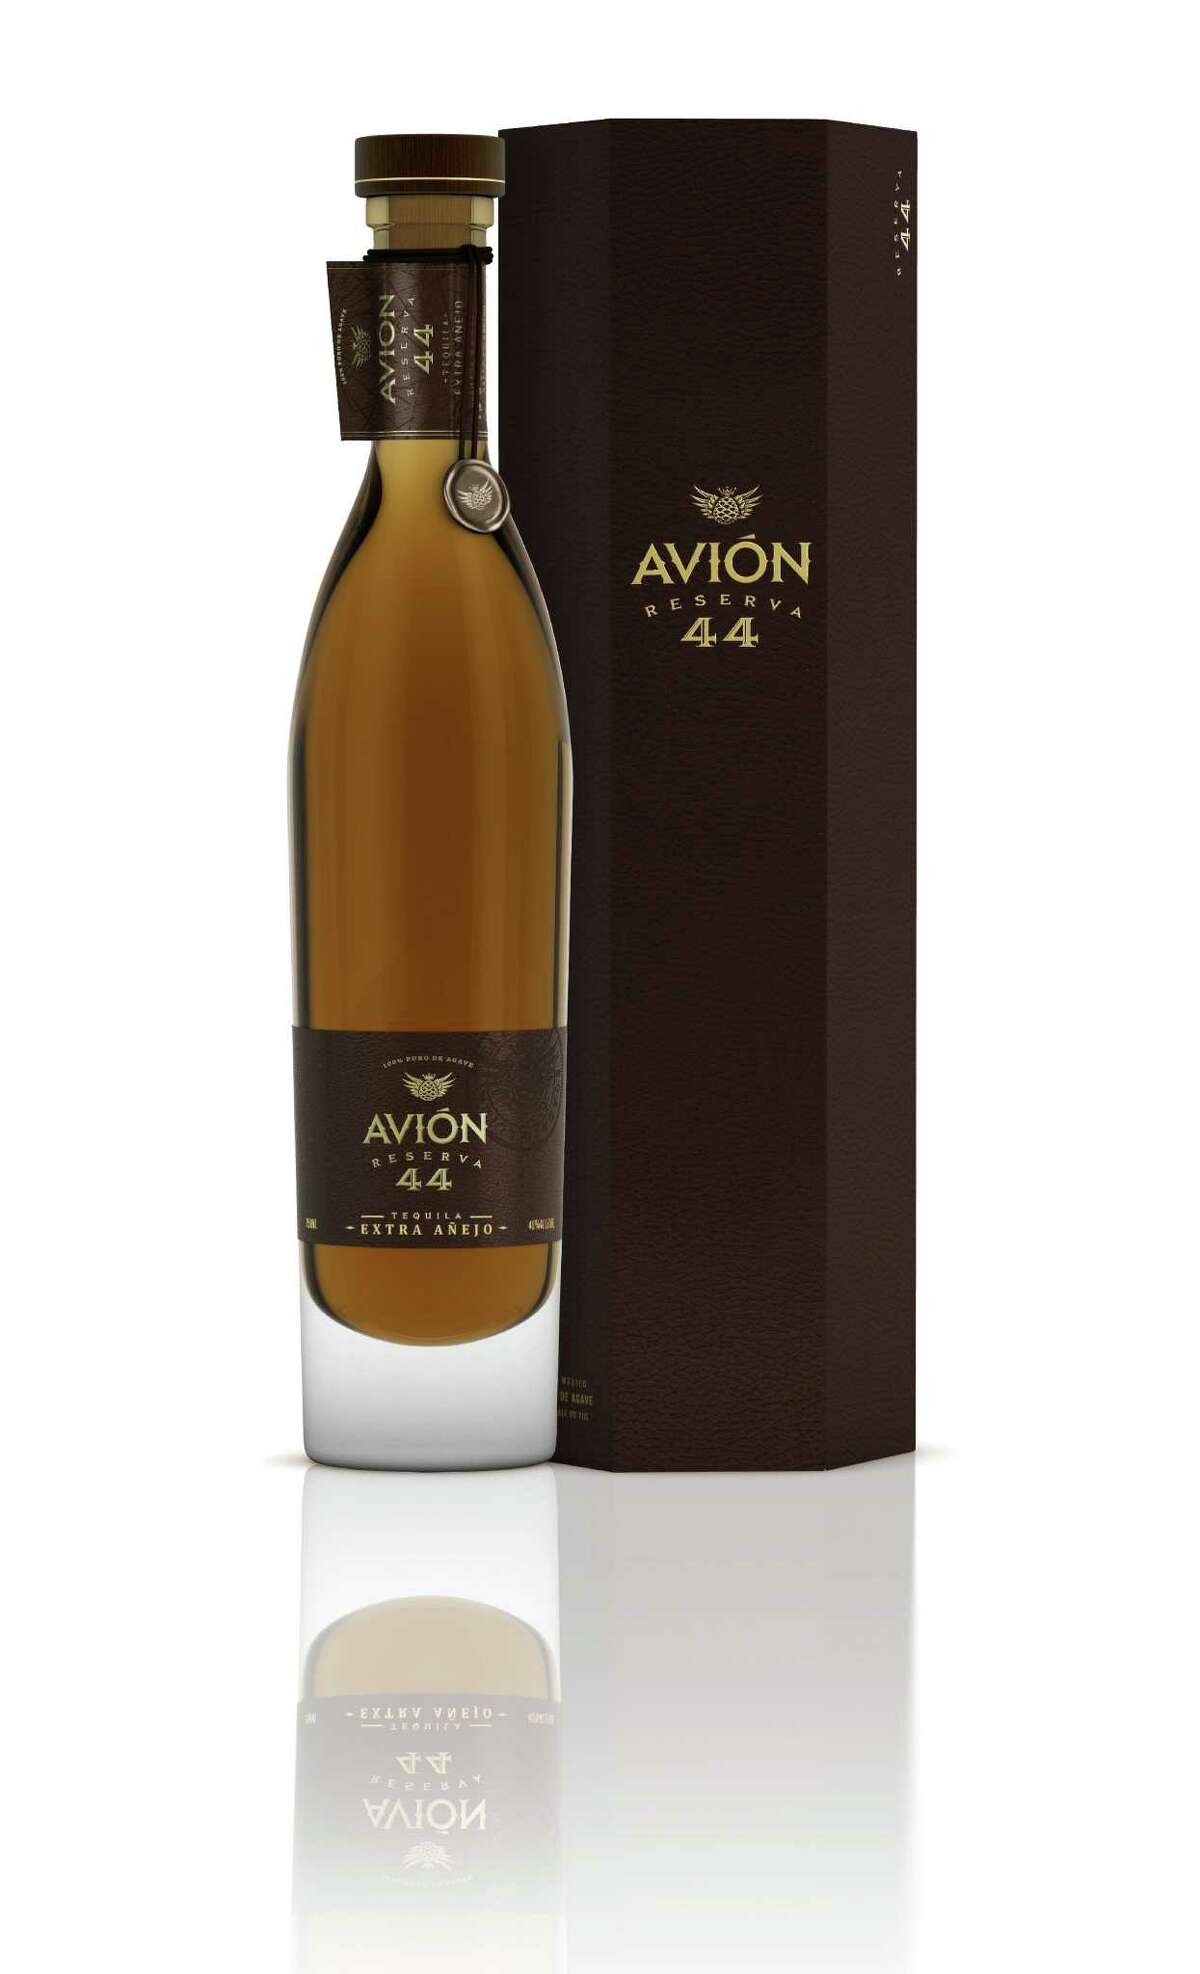 If you and your entourage have no aversion to showing off a bit, you might as well spoil yourself with Avion Reserva 44, a new extra anejo tequila from the brand that was featured on Entrourage. Aged 43 months in a cave, Reserva offers a rich complex taste with notes of vanilla and ripe fruits; $150.